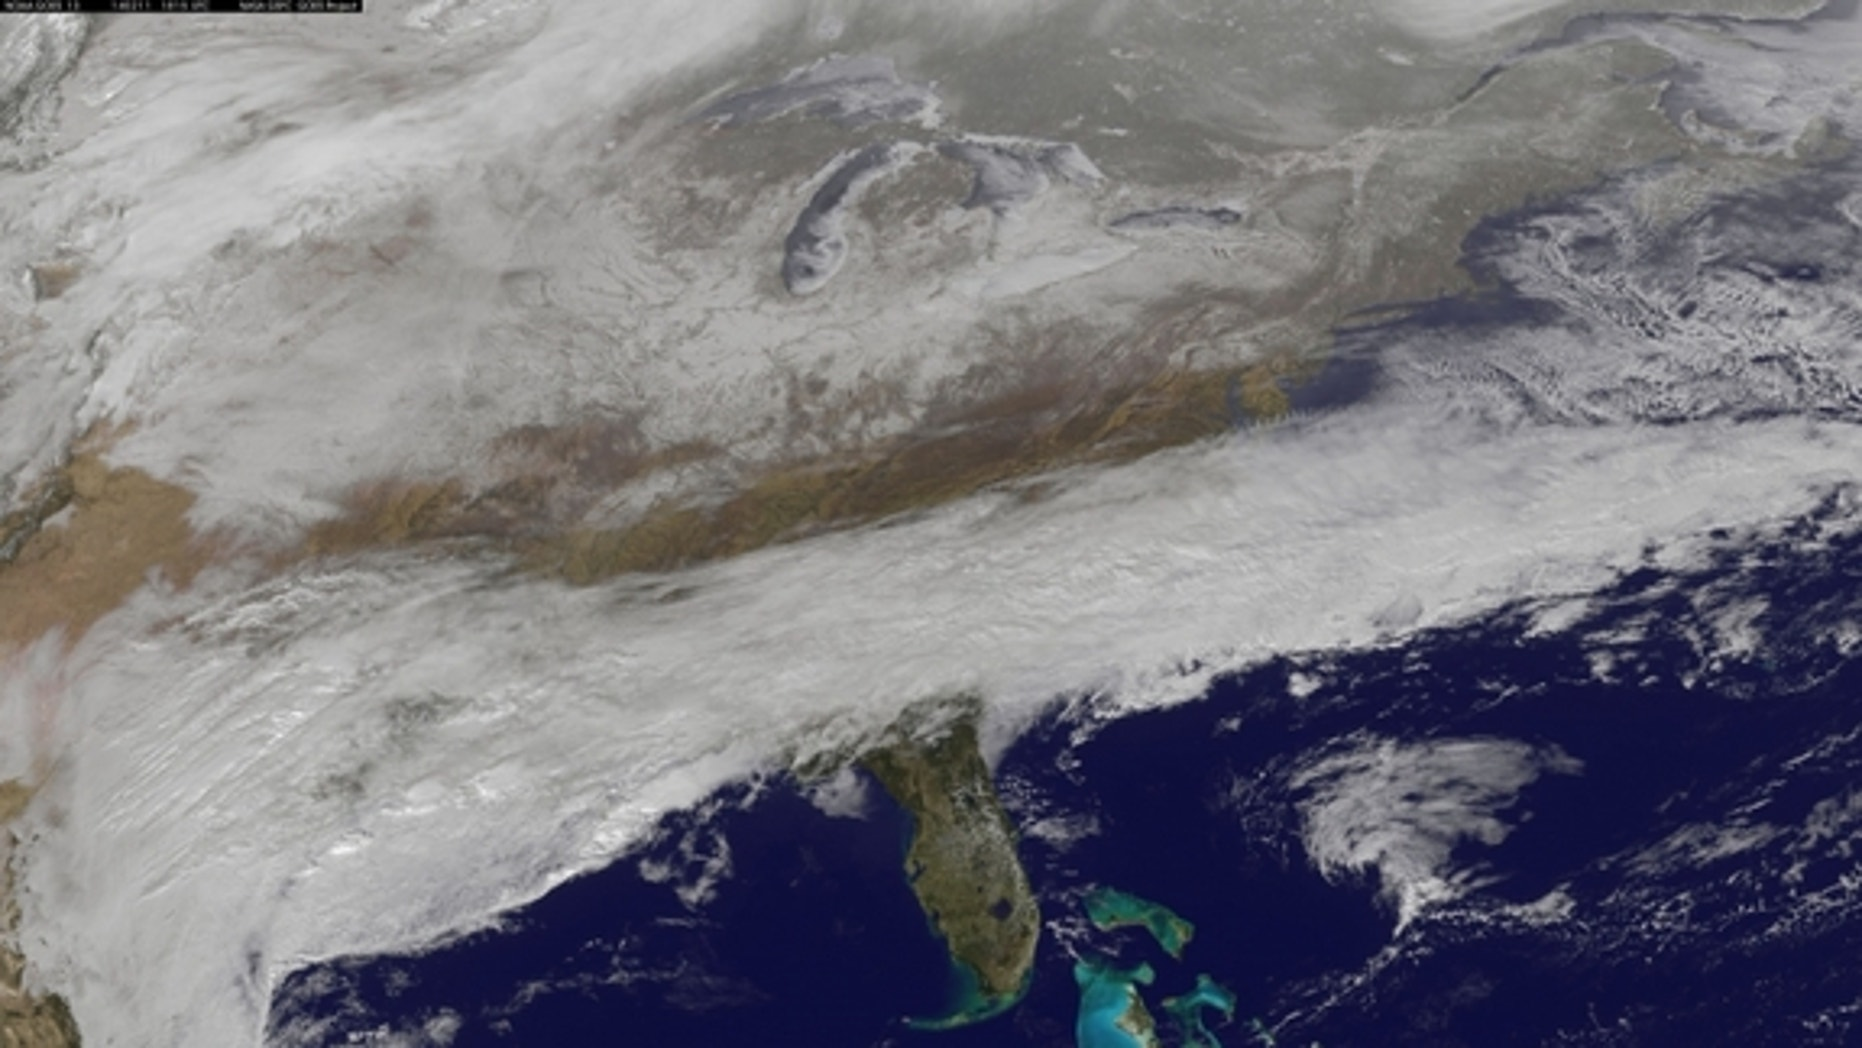 NOAA's GOES-East satellite captured this image of a storm over the southeastern U.S. on Feb. 11, 2014 at 1:15 p.m. EST (1815 UTC).